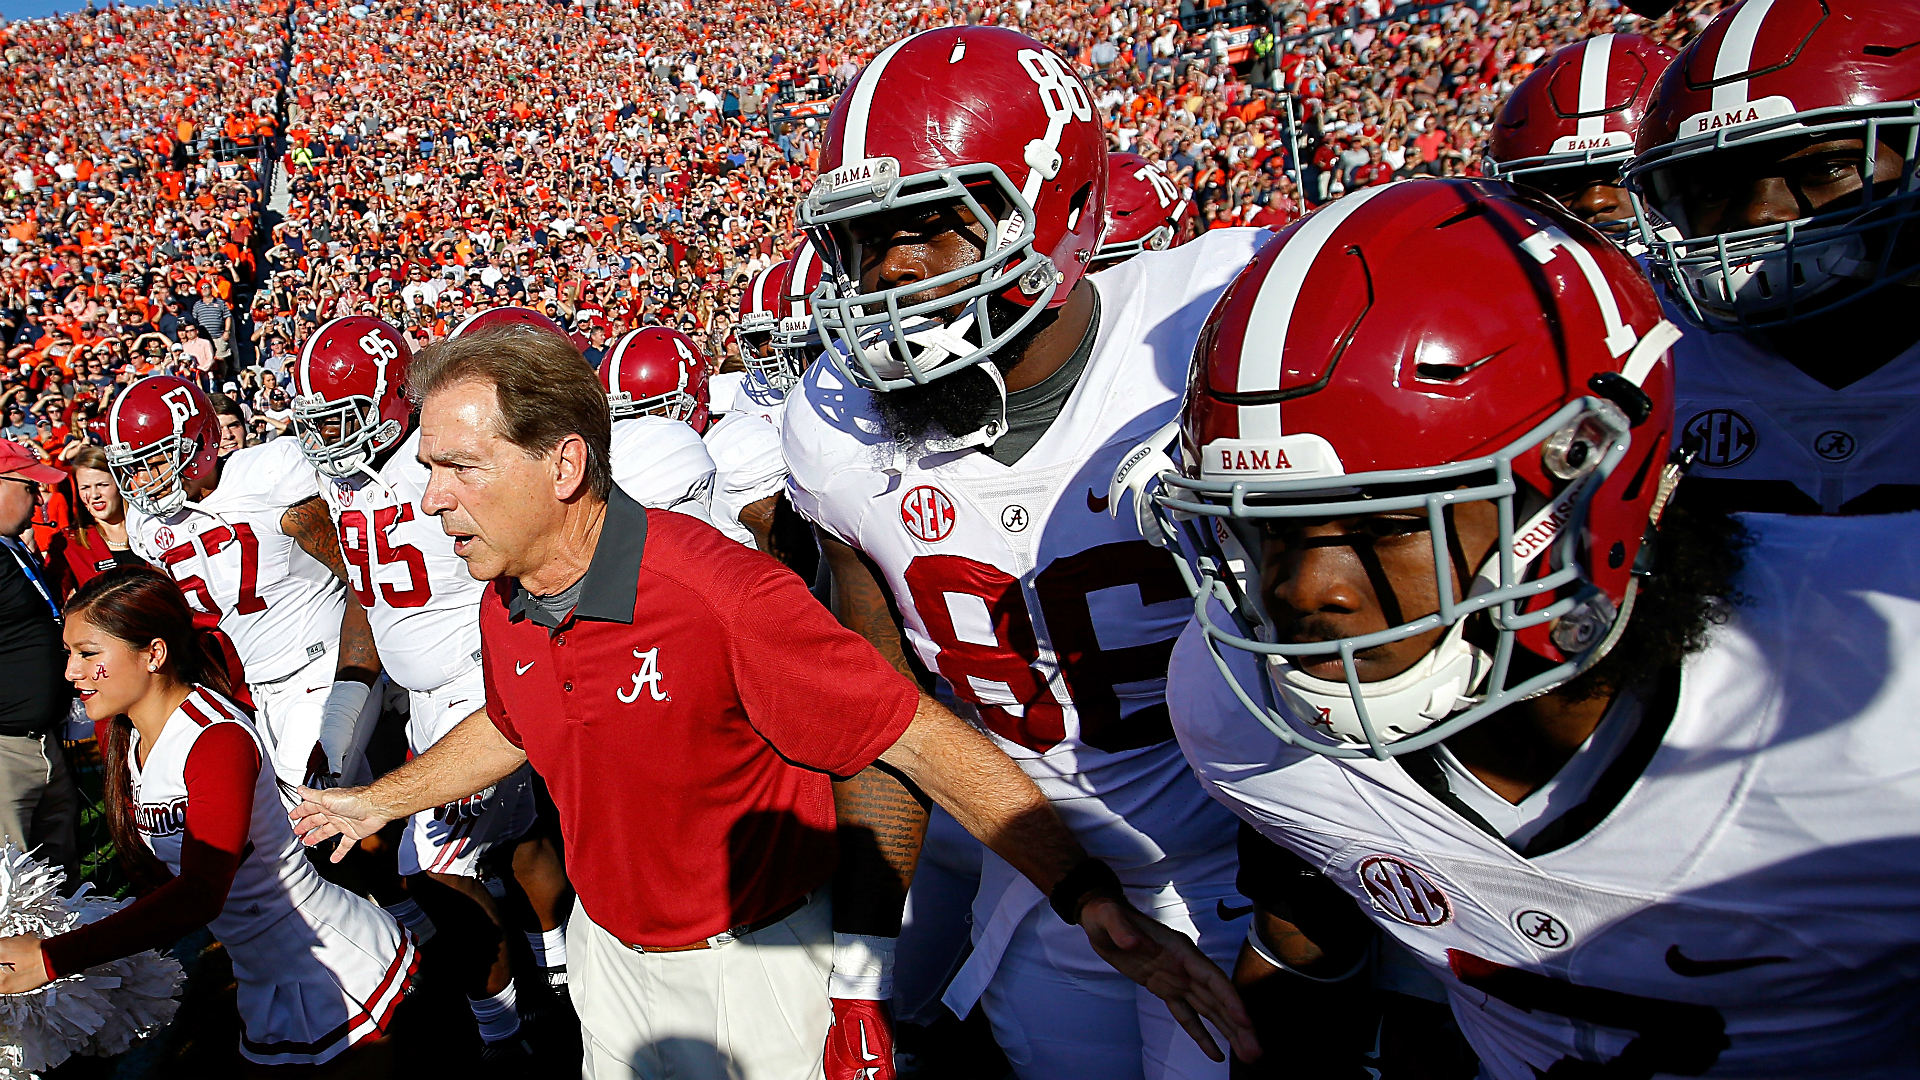 Alabama Spring Game: Time, Channel, Players To Watch